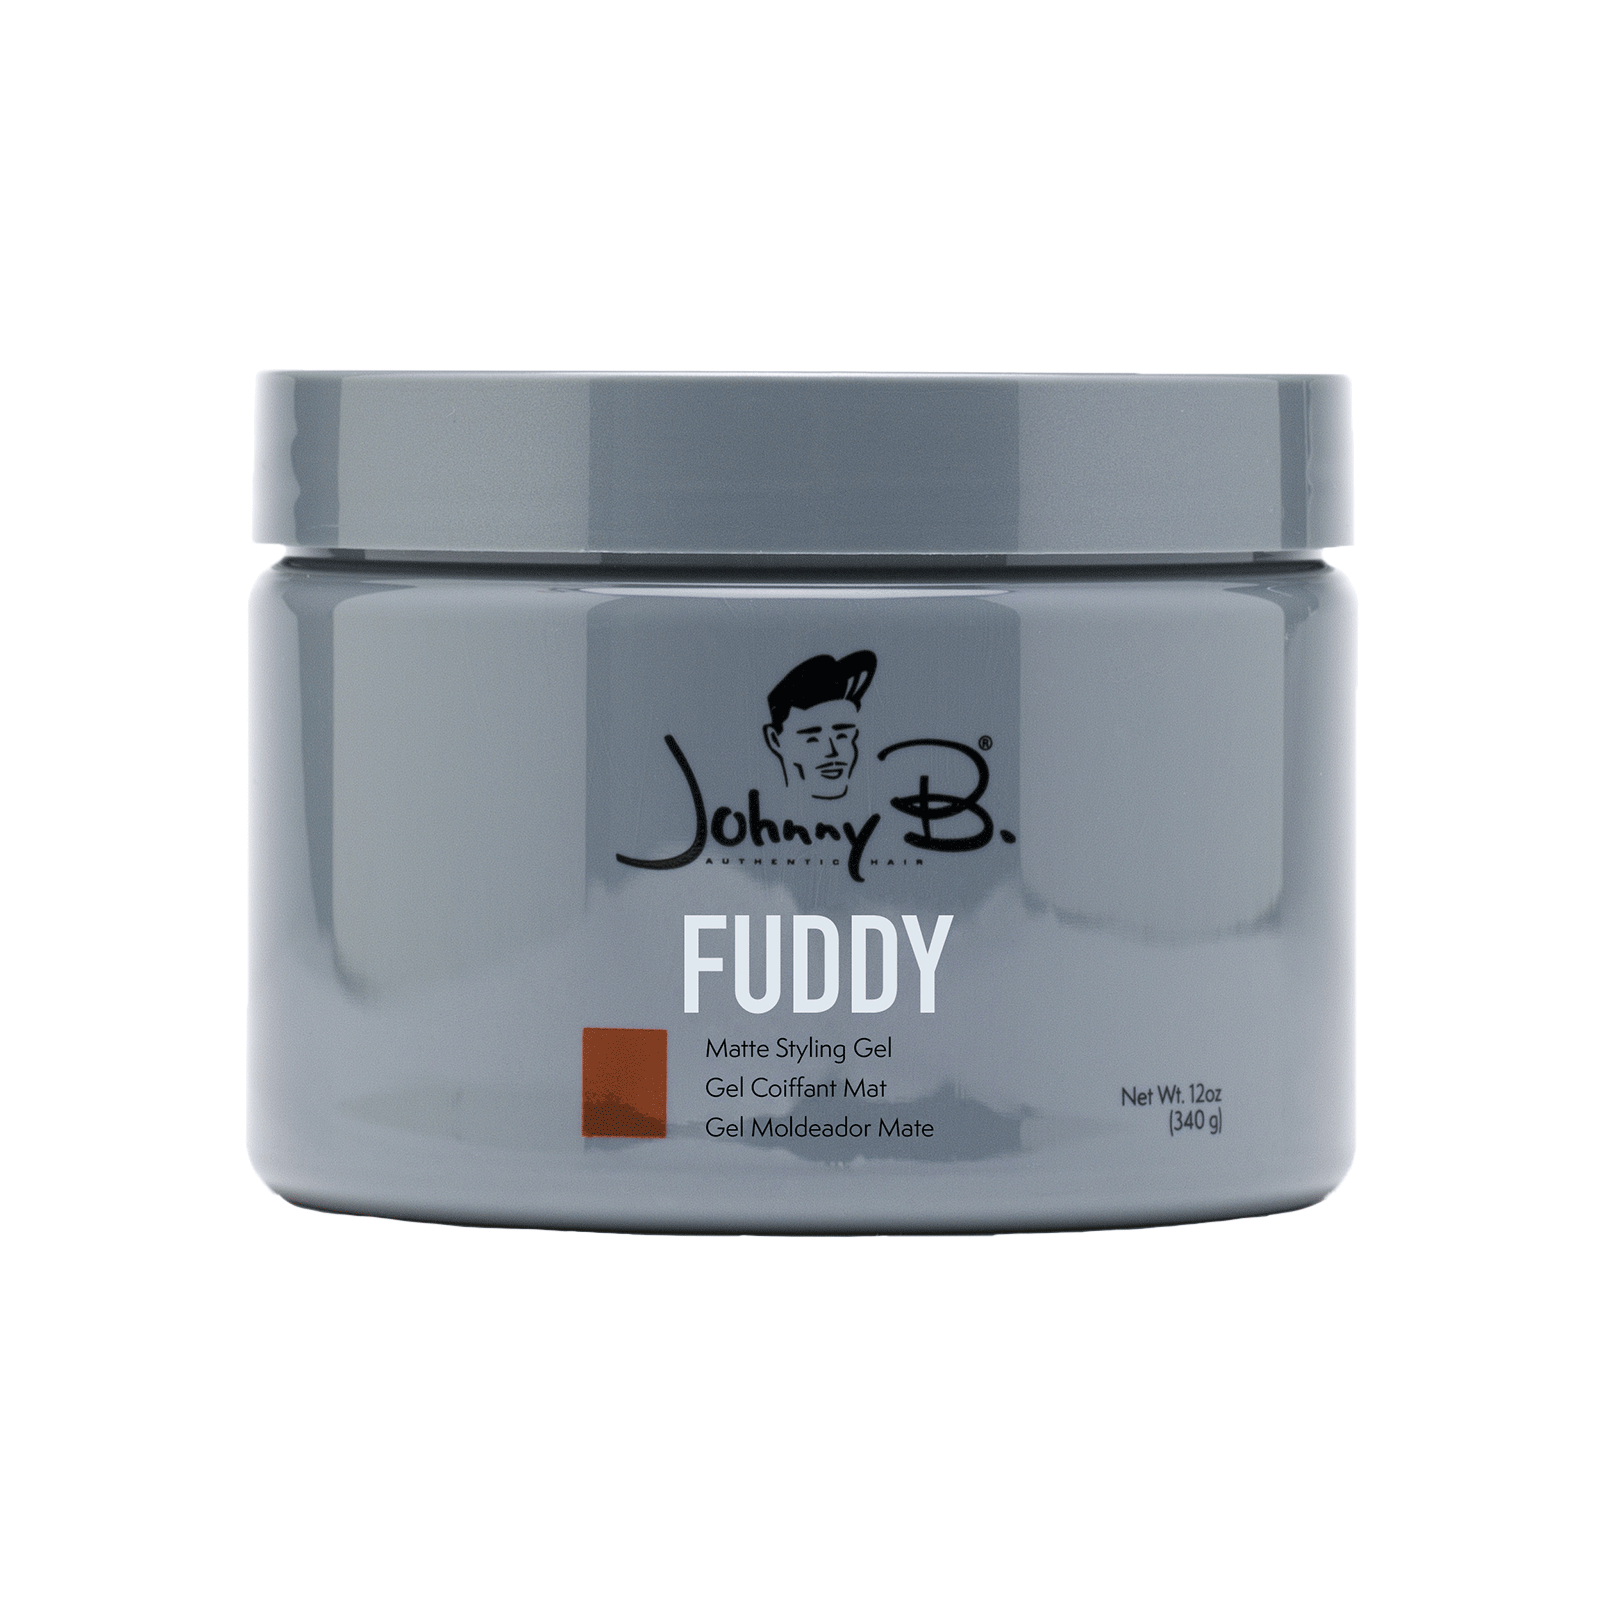 Fuddy Matte Styling Gel